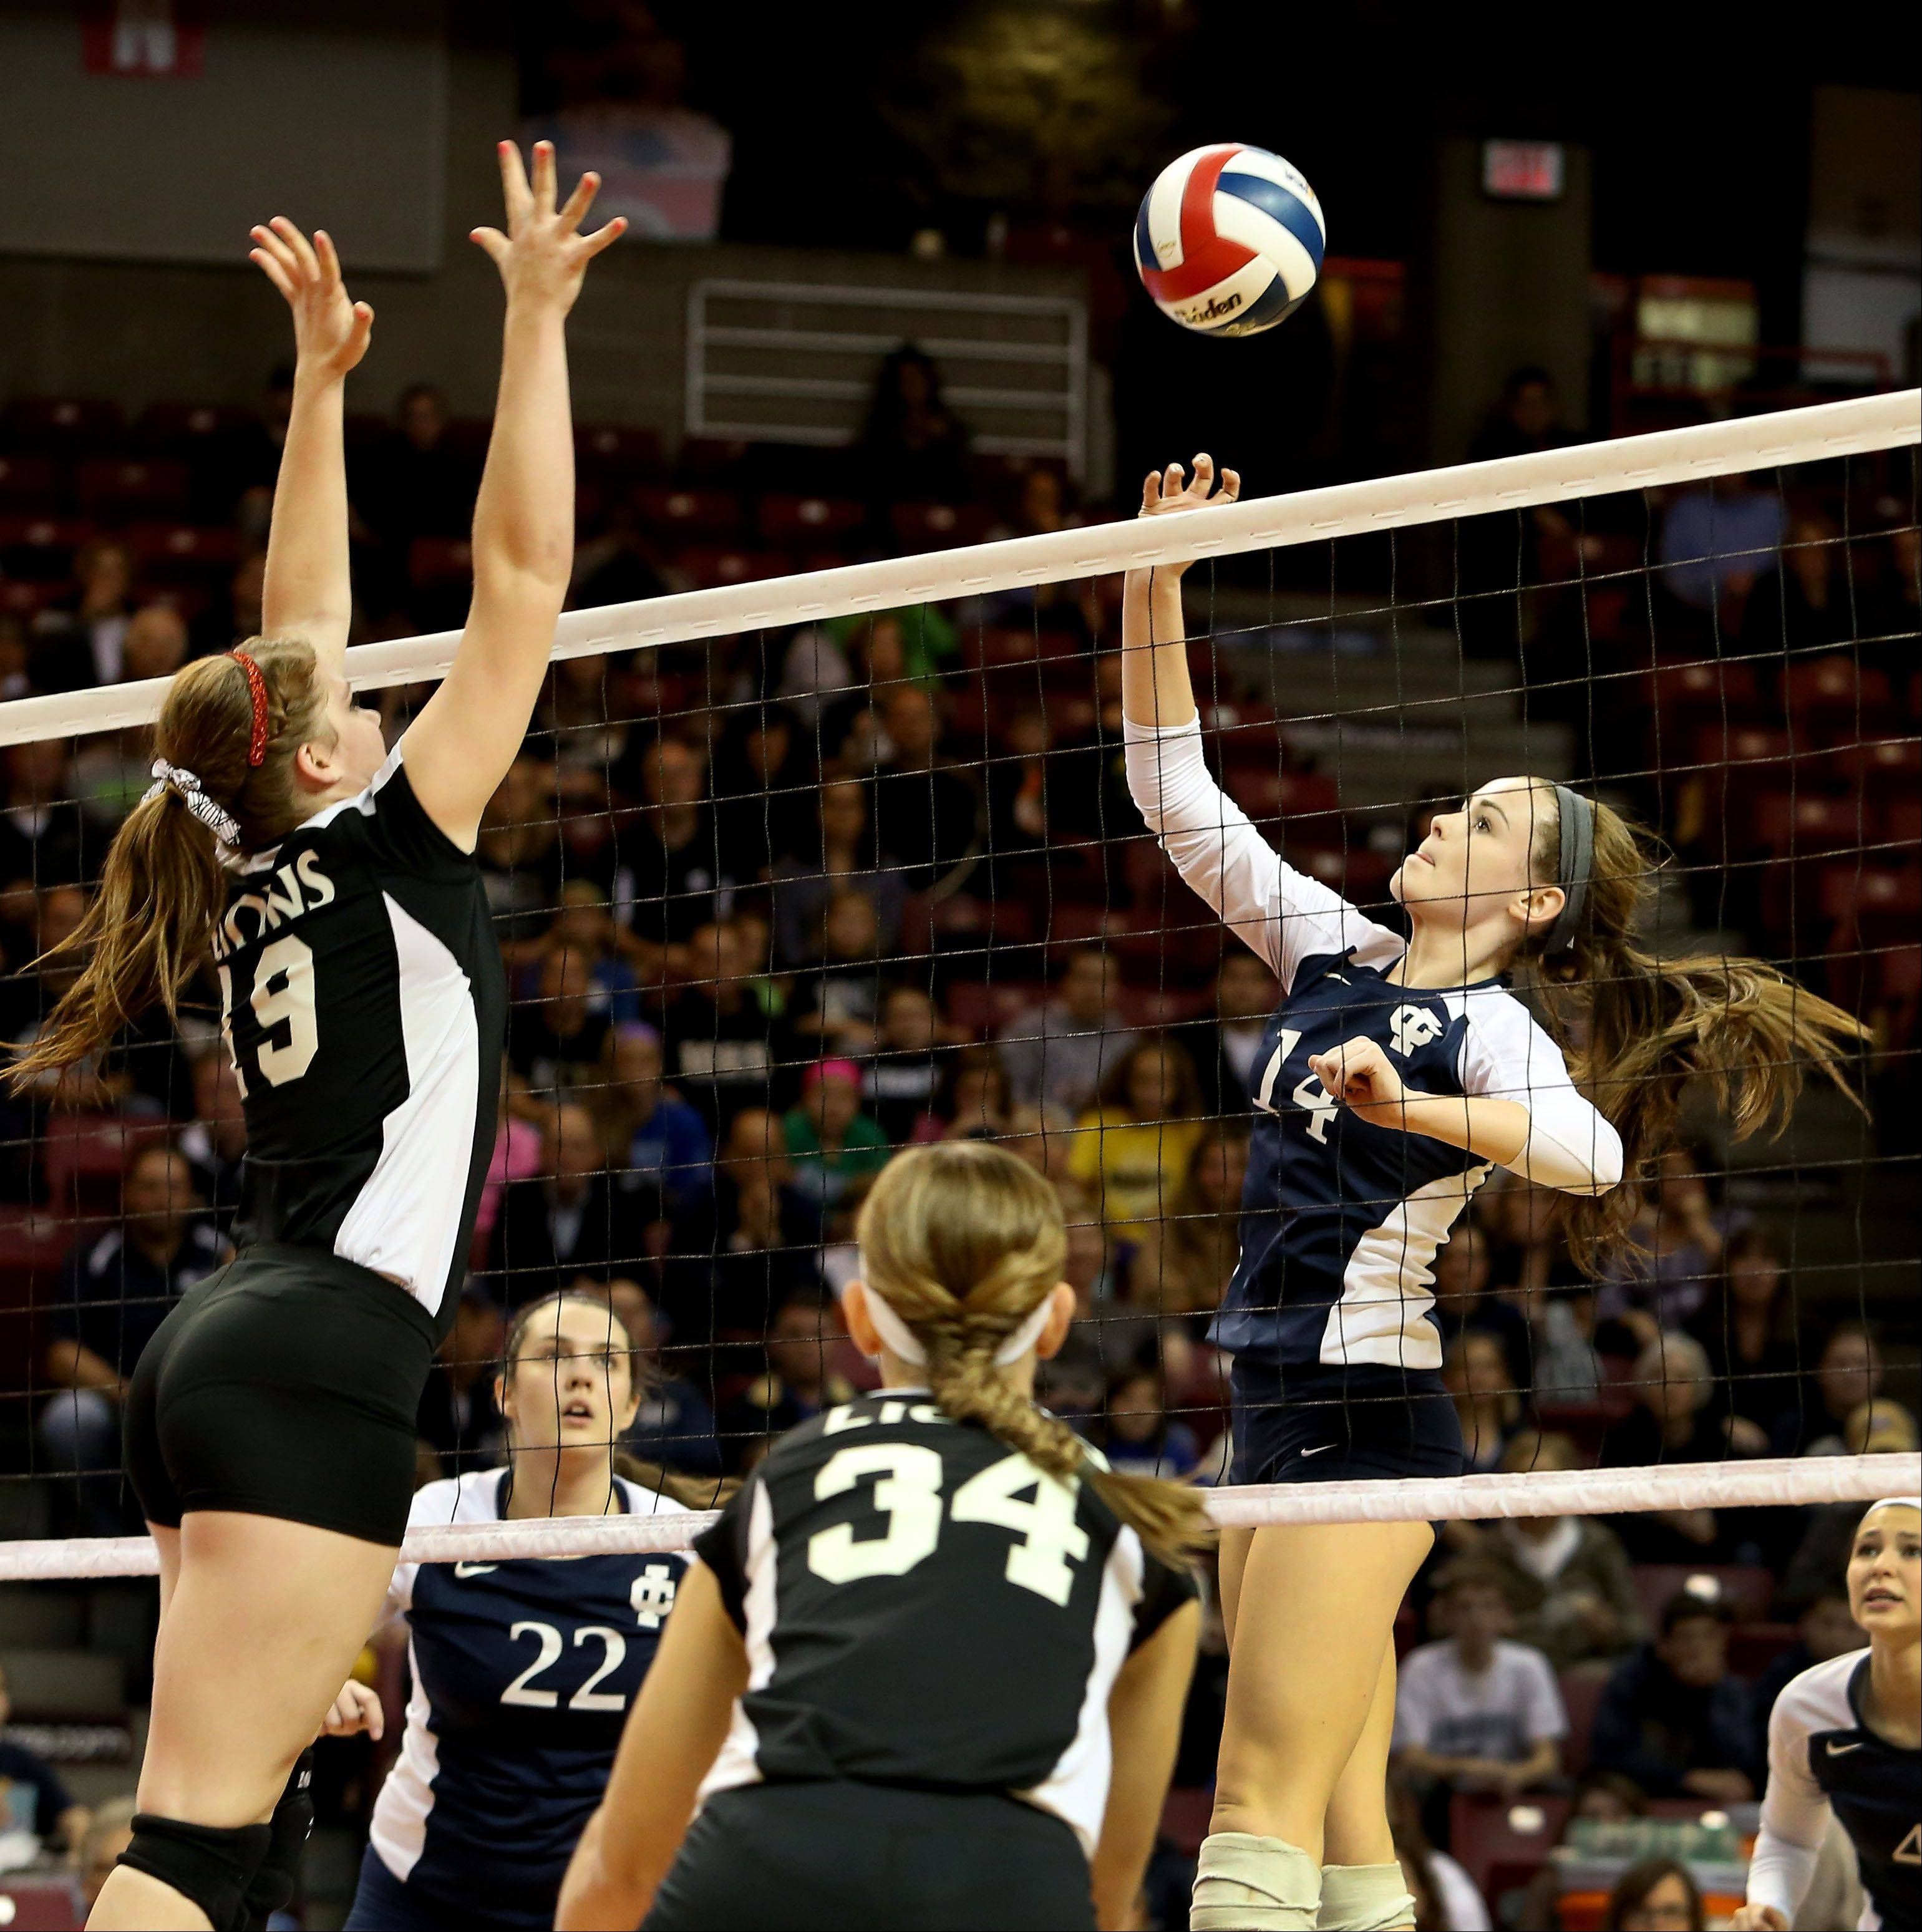 Images: IC Catholic vs. Edwards County volleyball